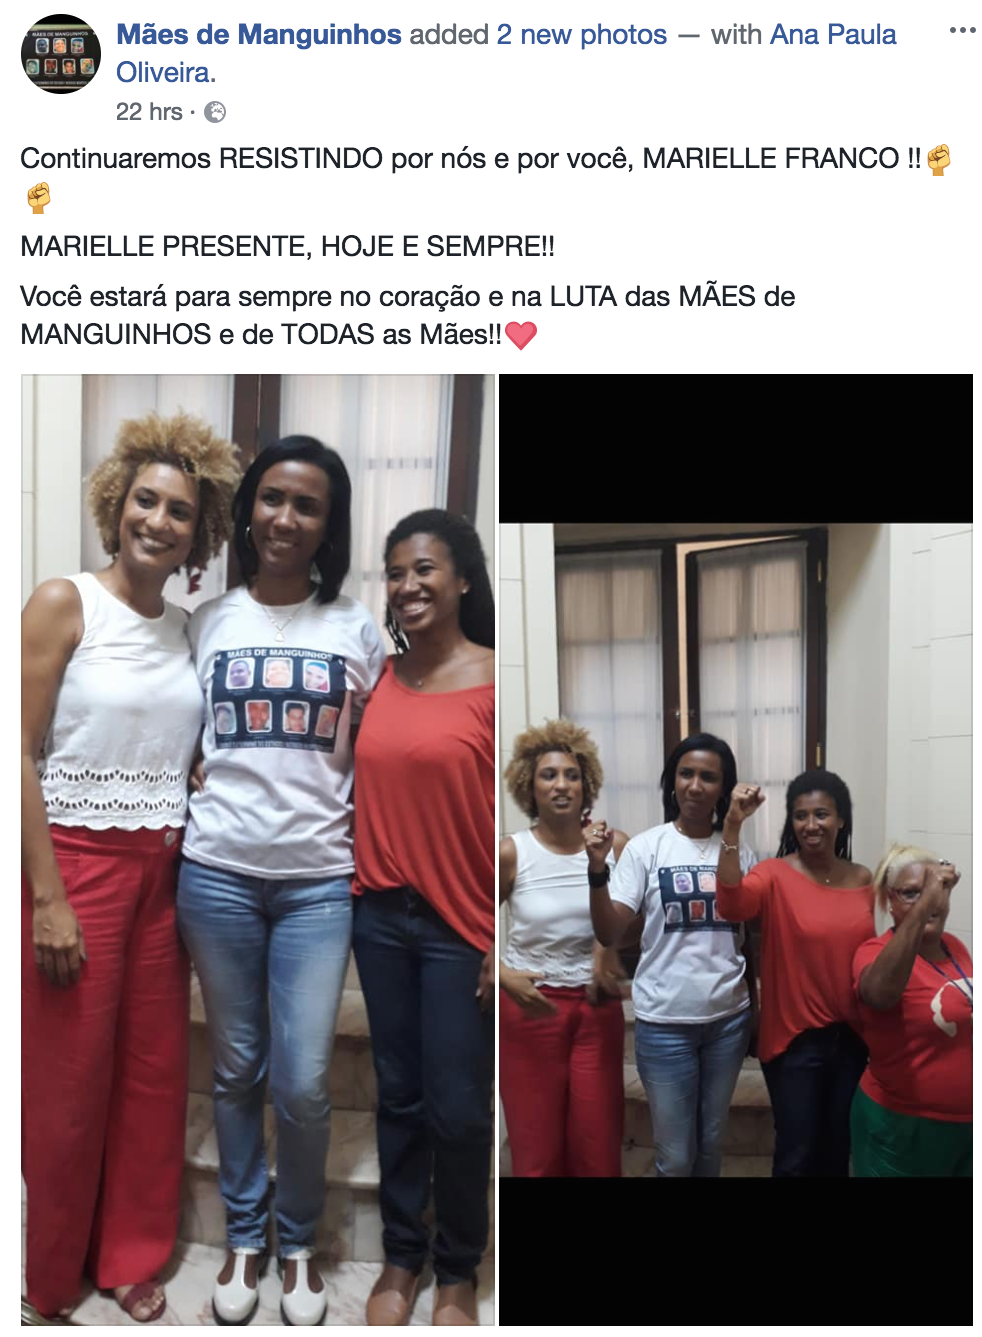 Marielle Franco on the left, with mothers who lost their sons to police violence in Manguinhos favela